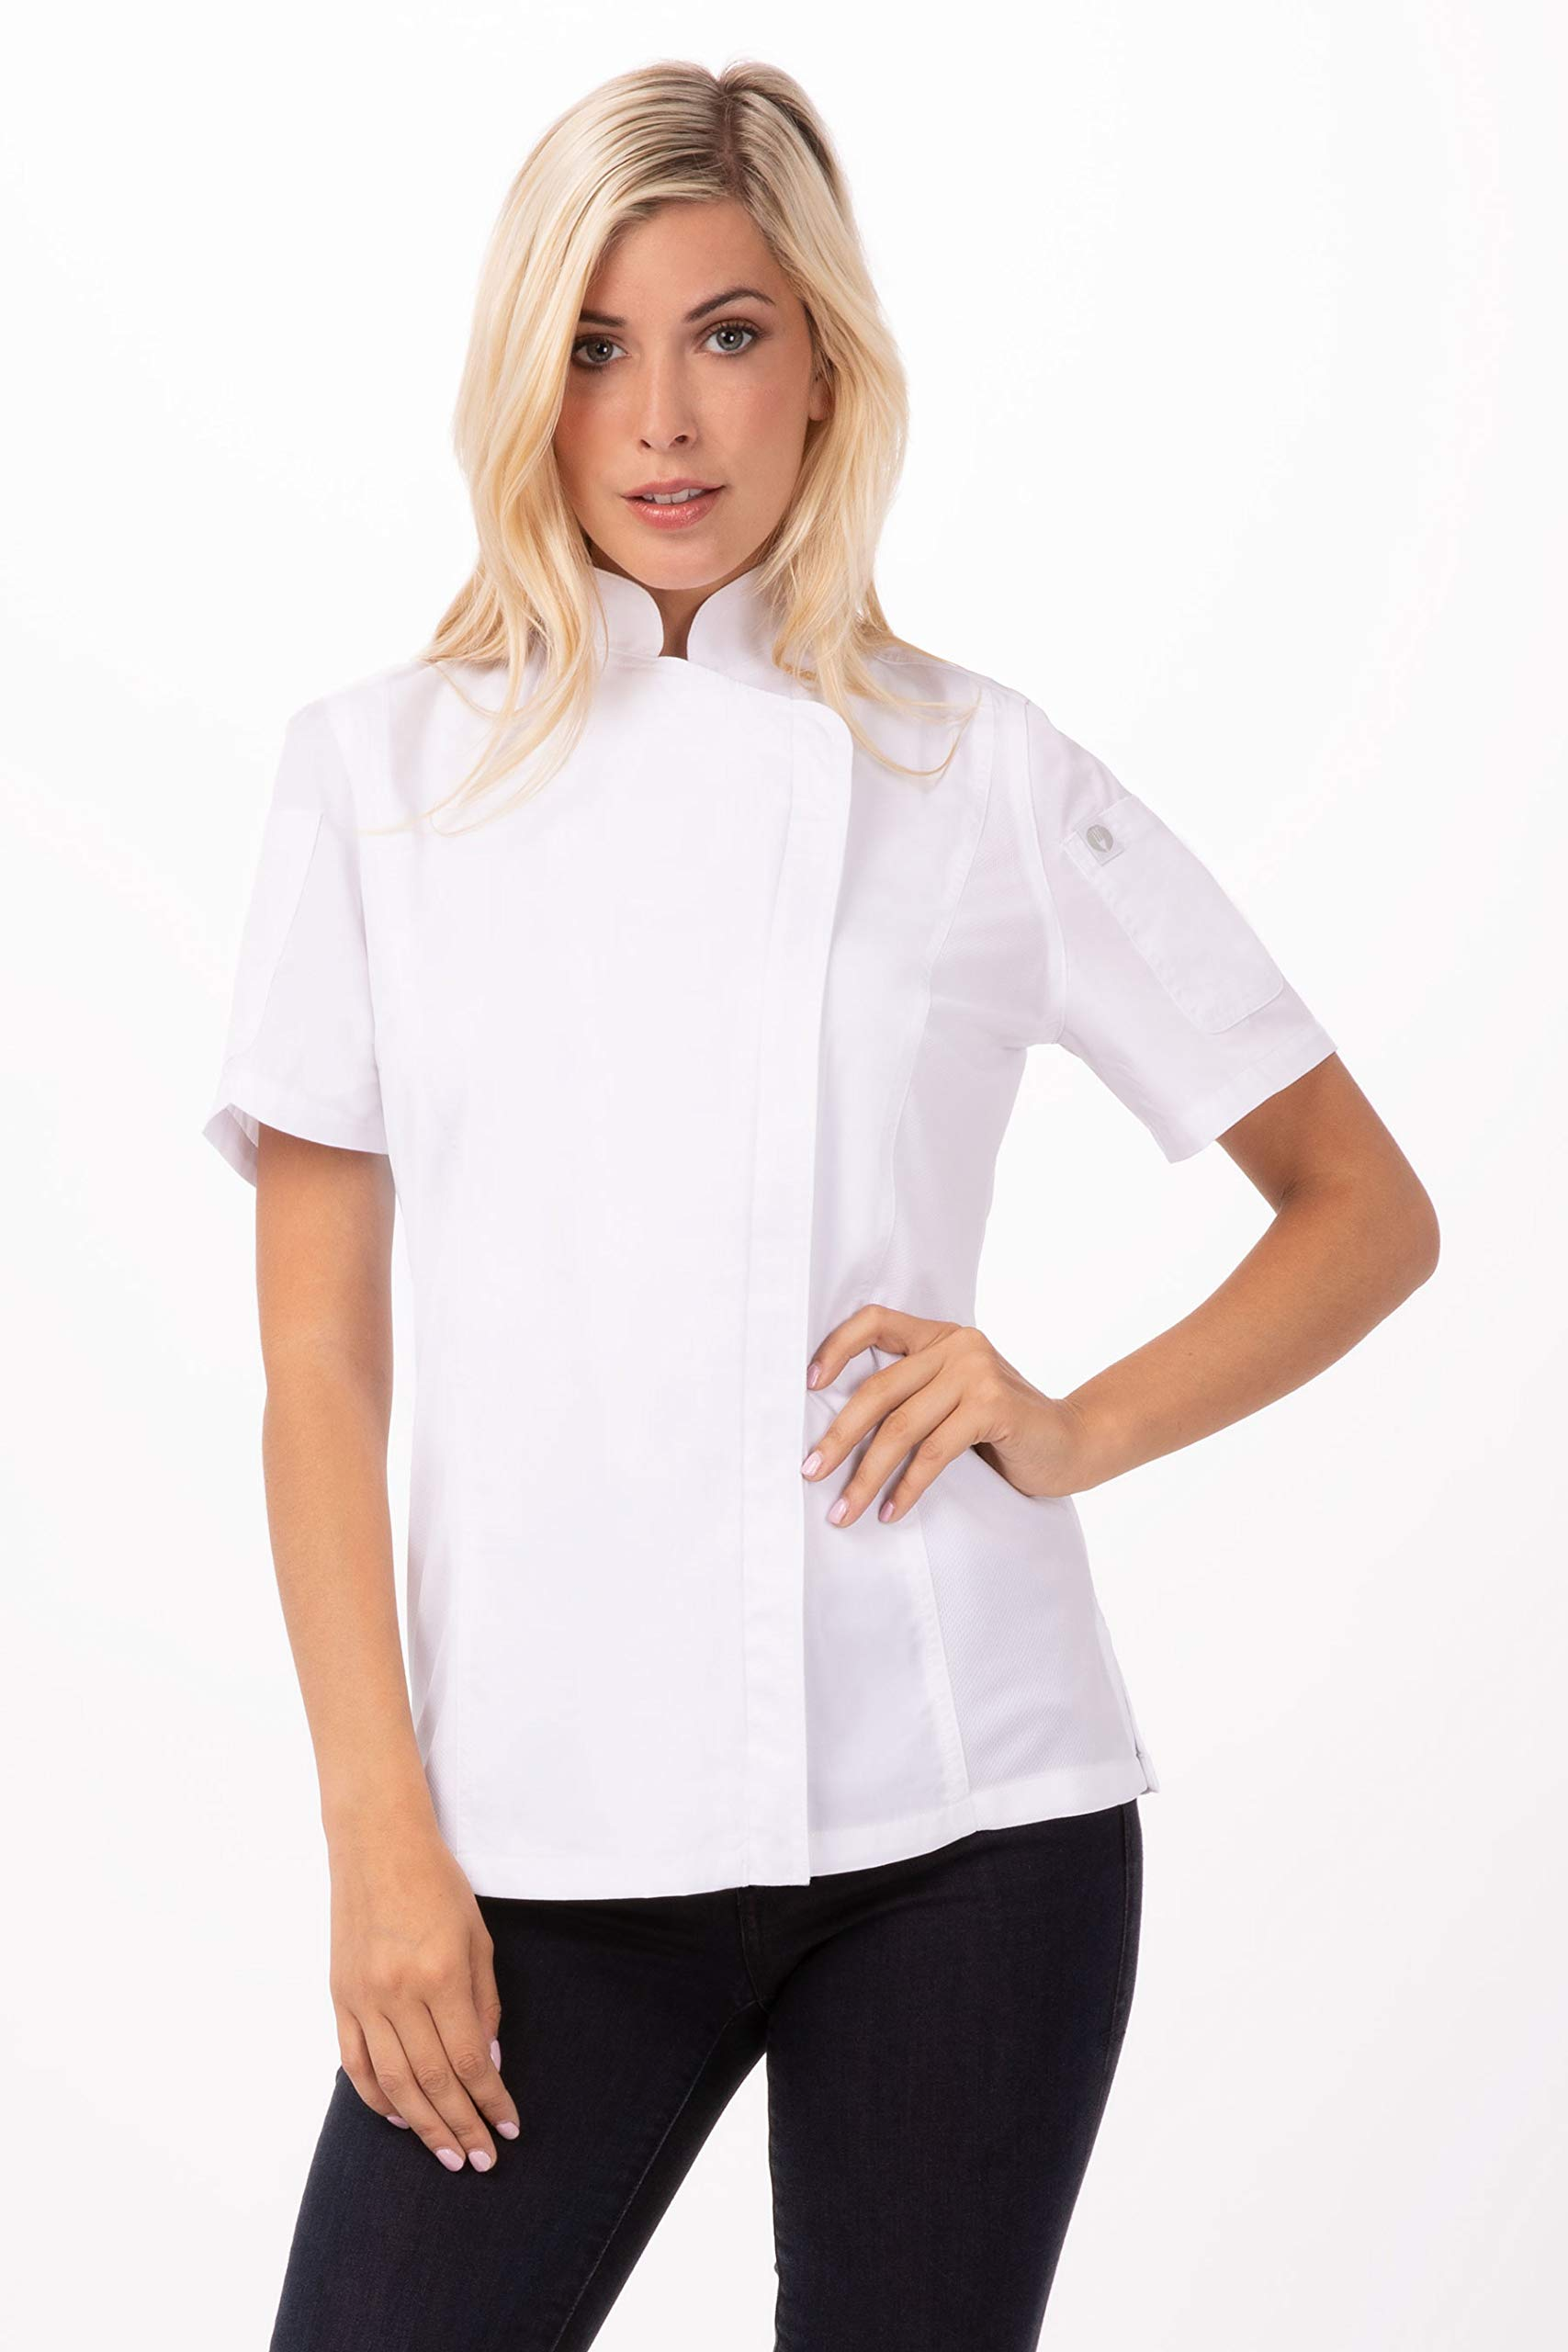 Chef Works Women's Springfield Chef Coat, White, 2X-Large by Chef Works